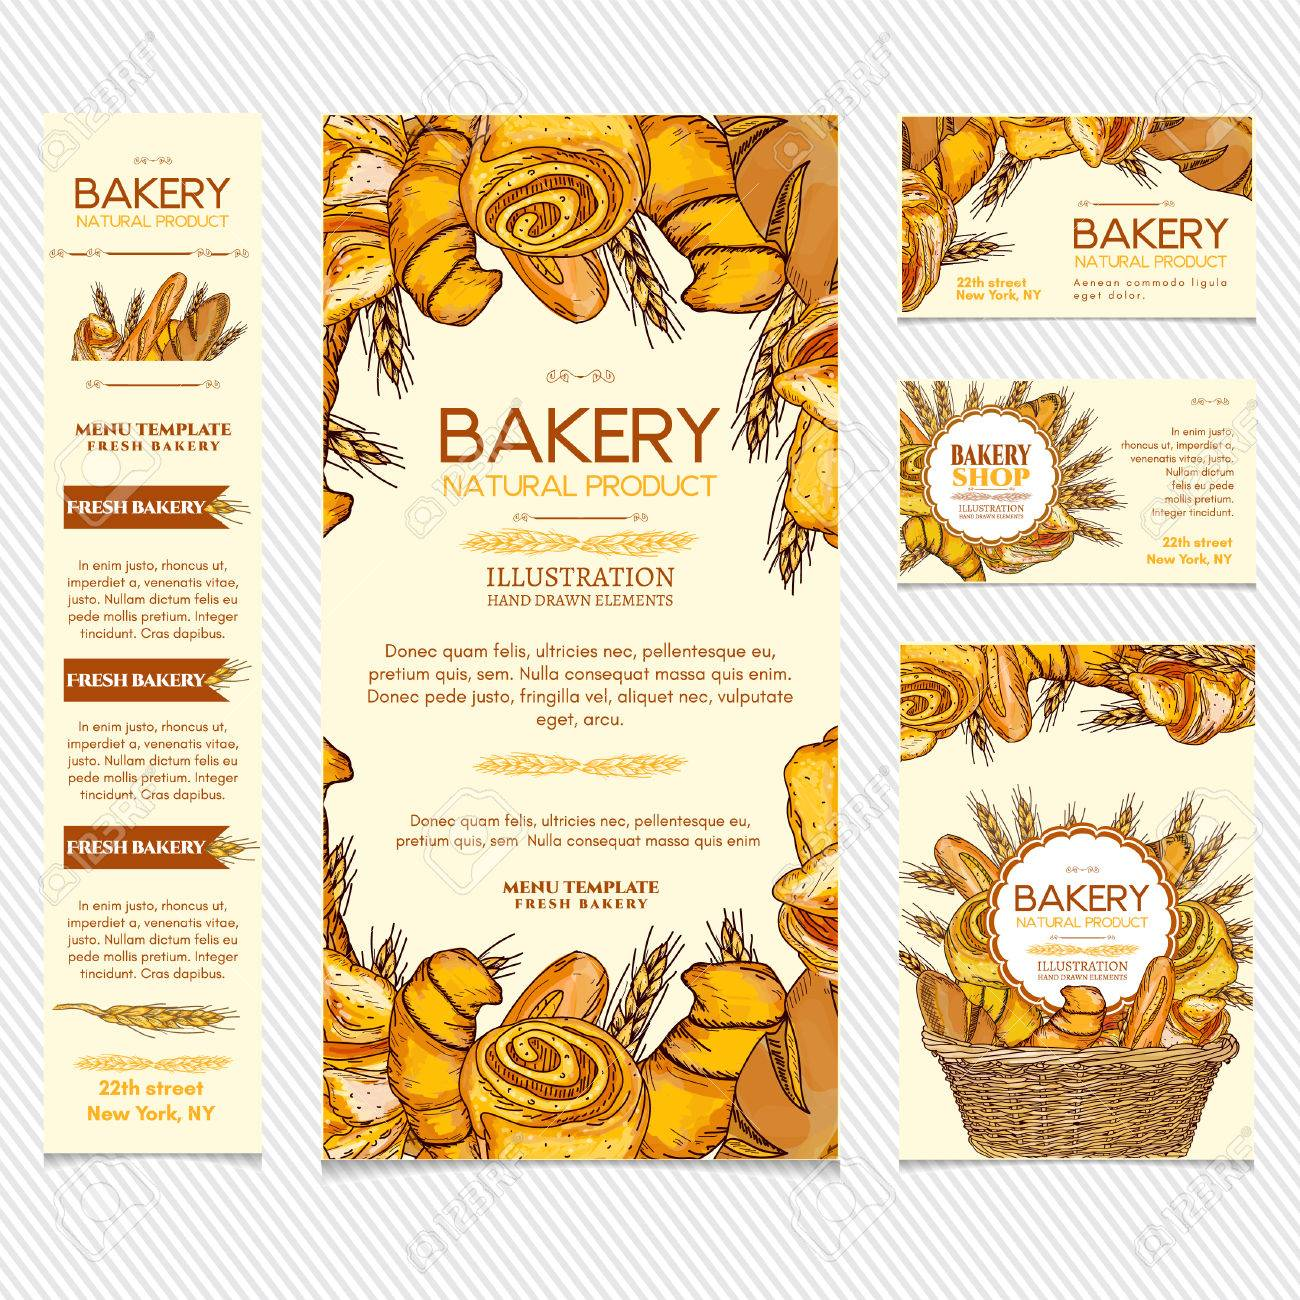 Bakery products restaurant menu template business card, page template vector illustration - 55822520